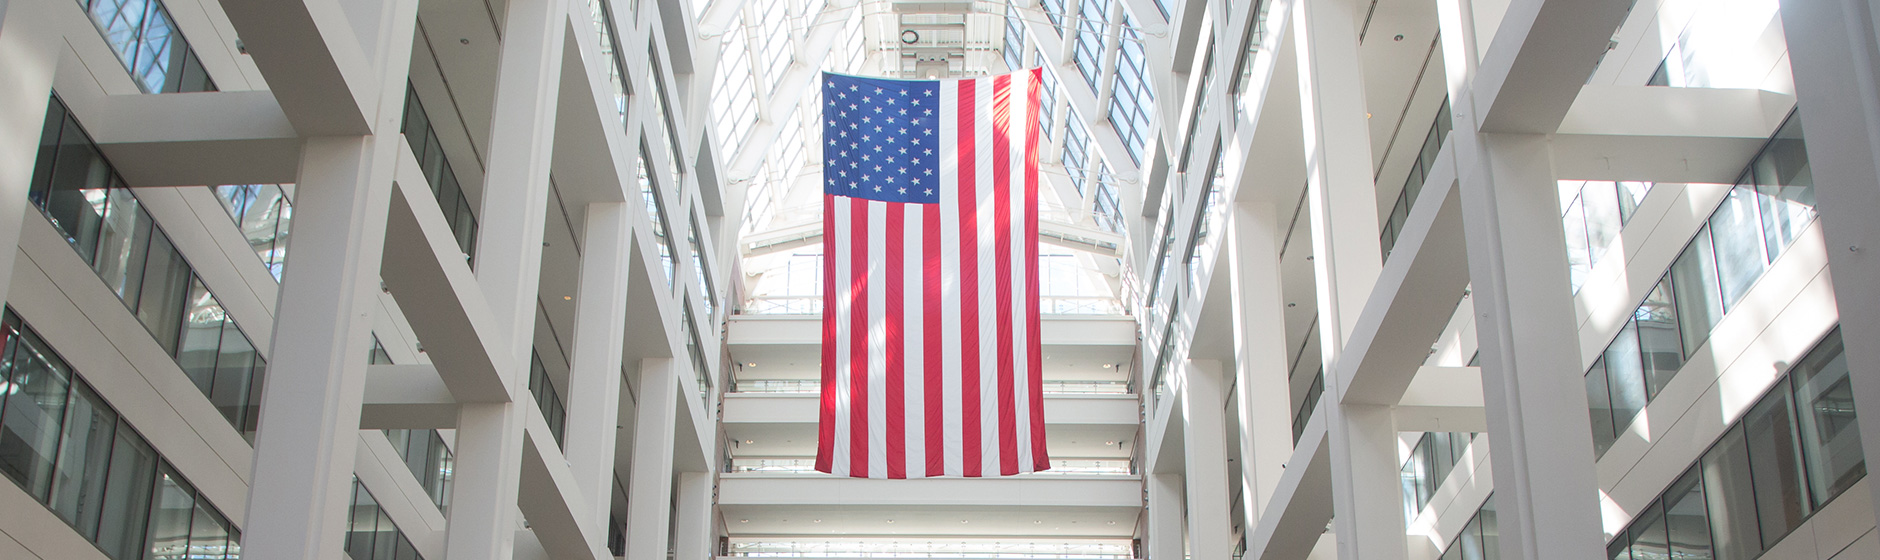 American Flag in Patent and Trademark Office Building